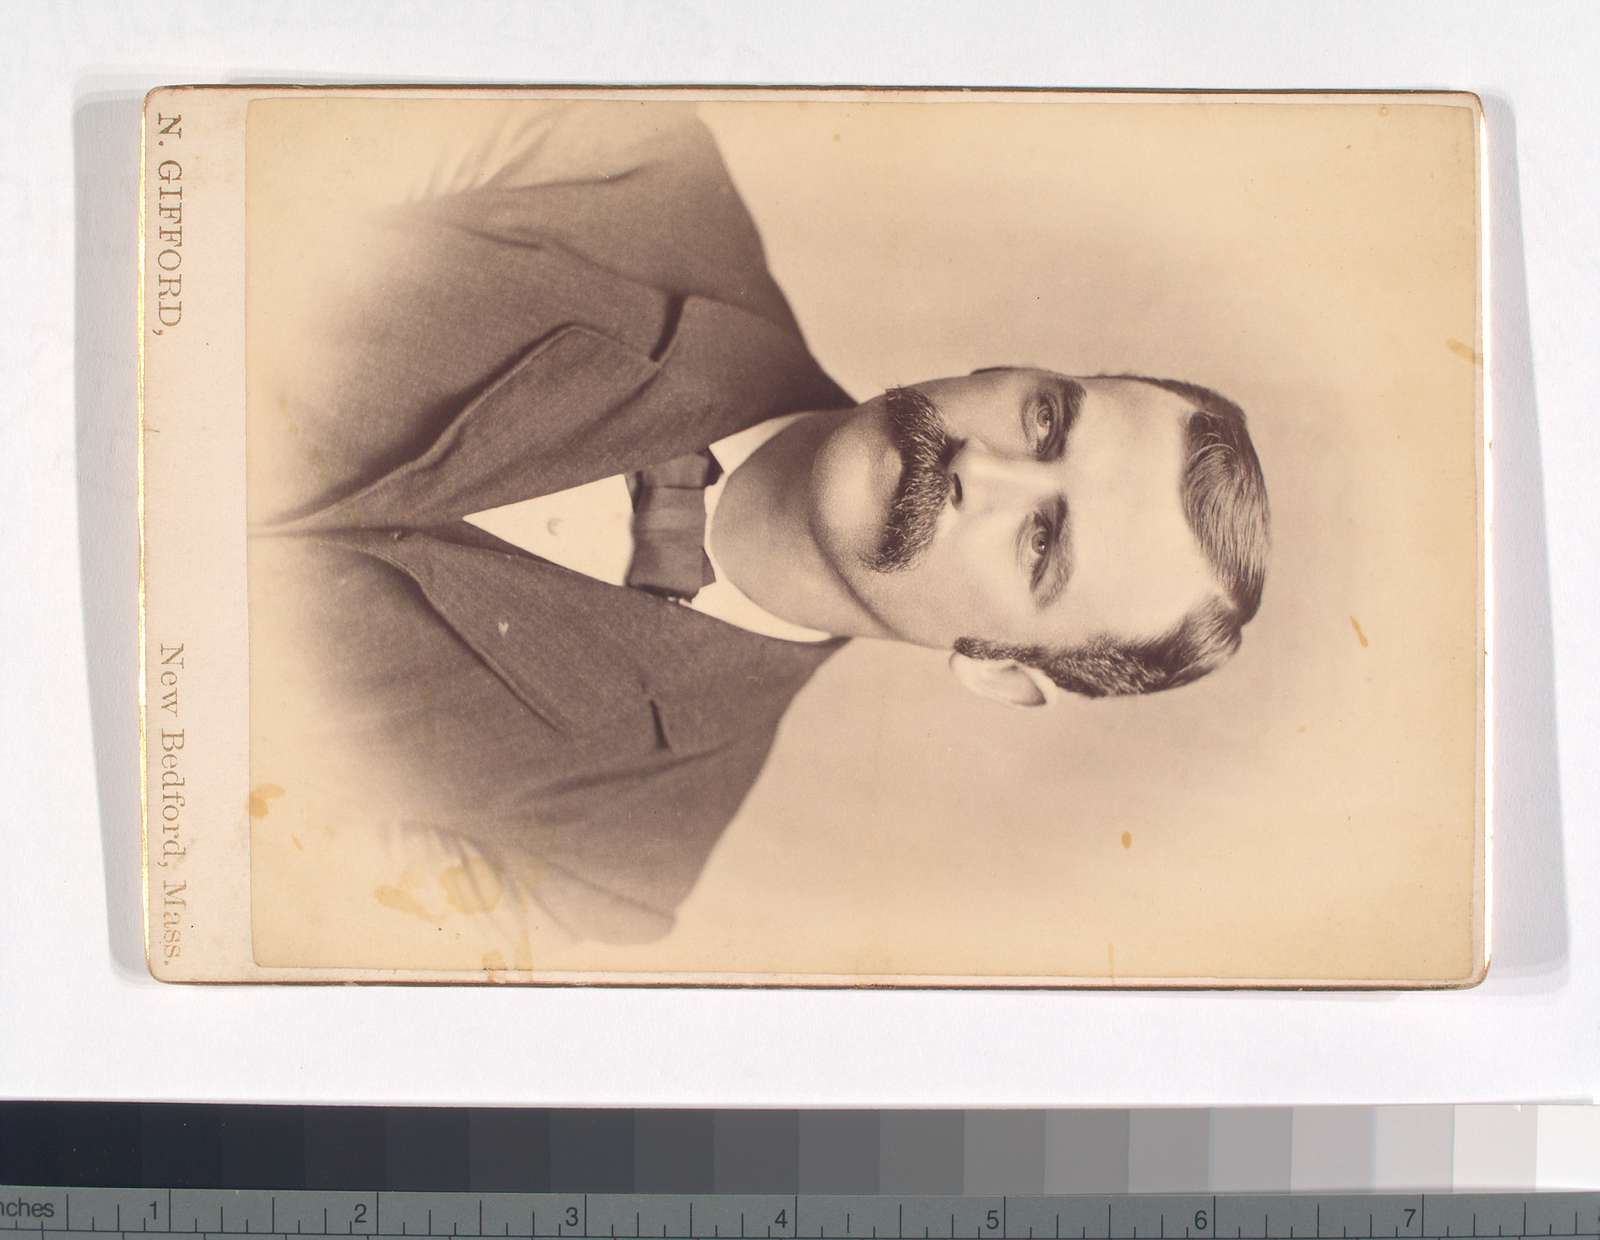 Unidentified man with mustache - wearing a suit and bow tie - portrait